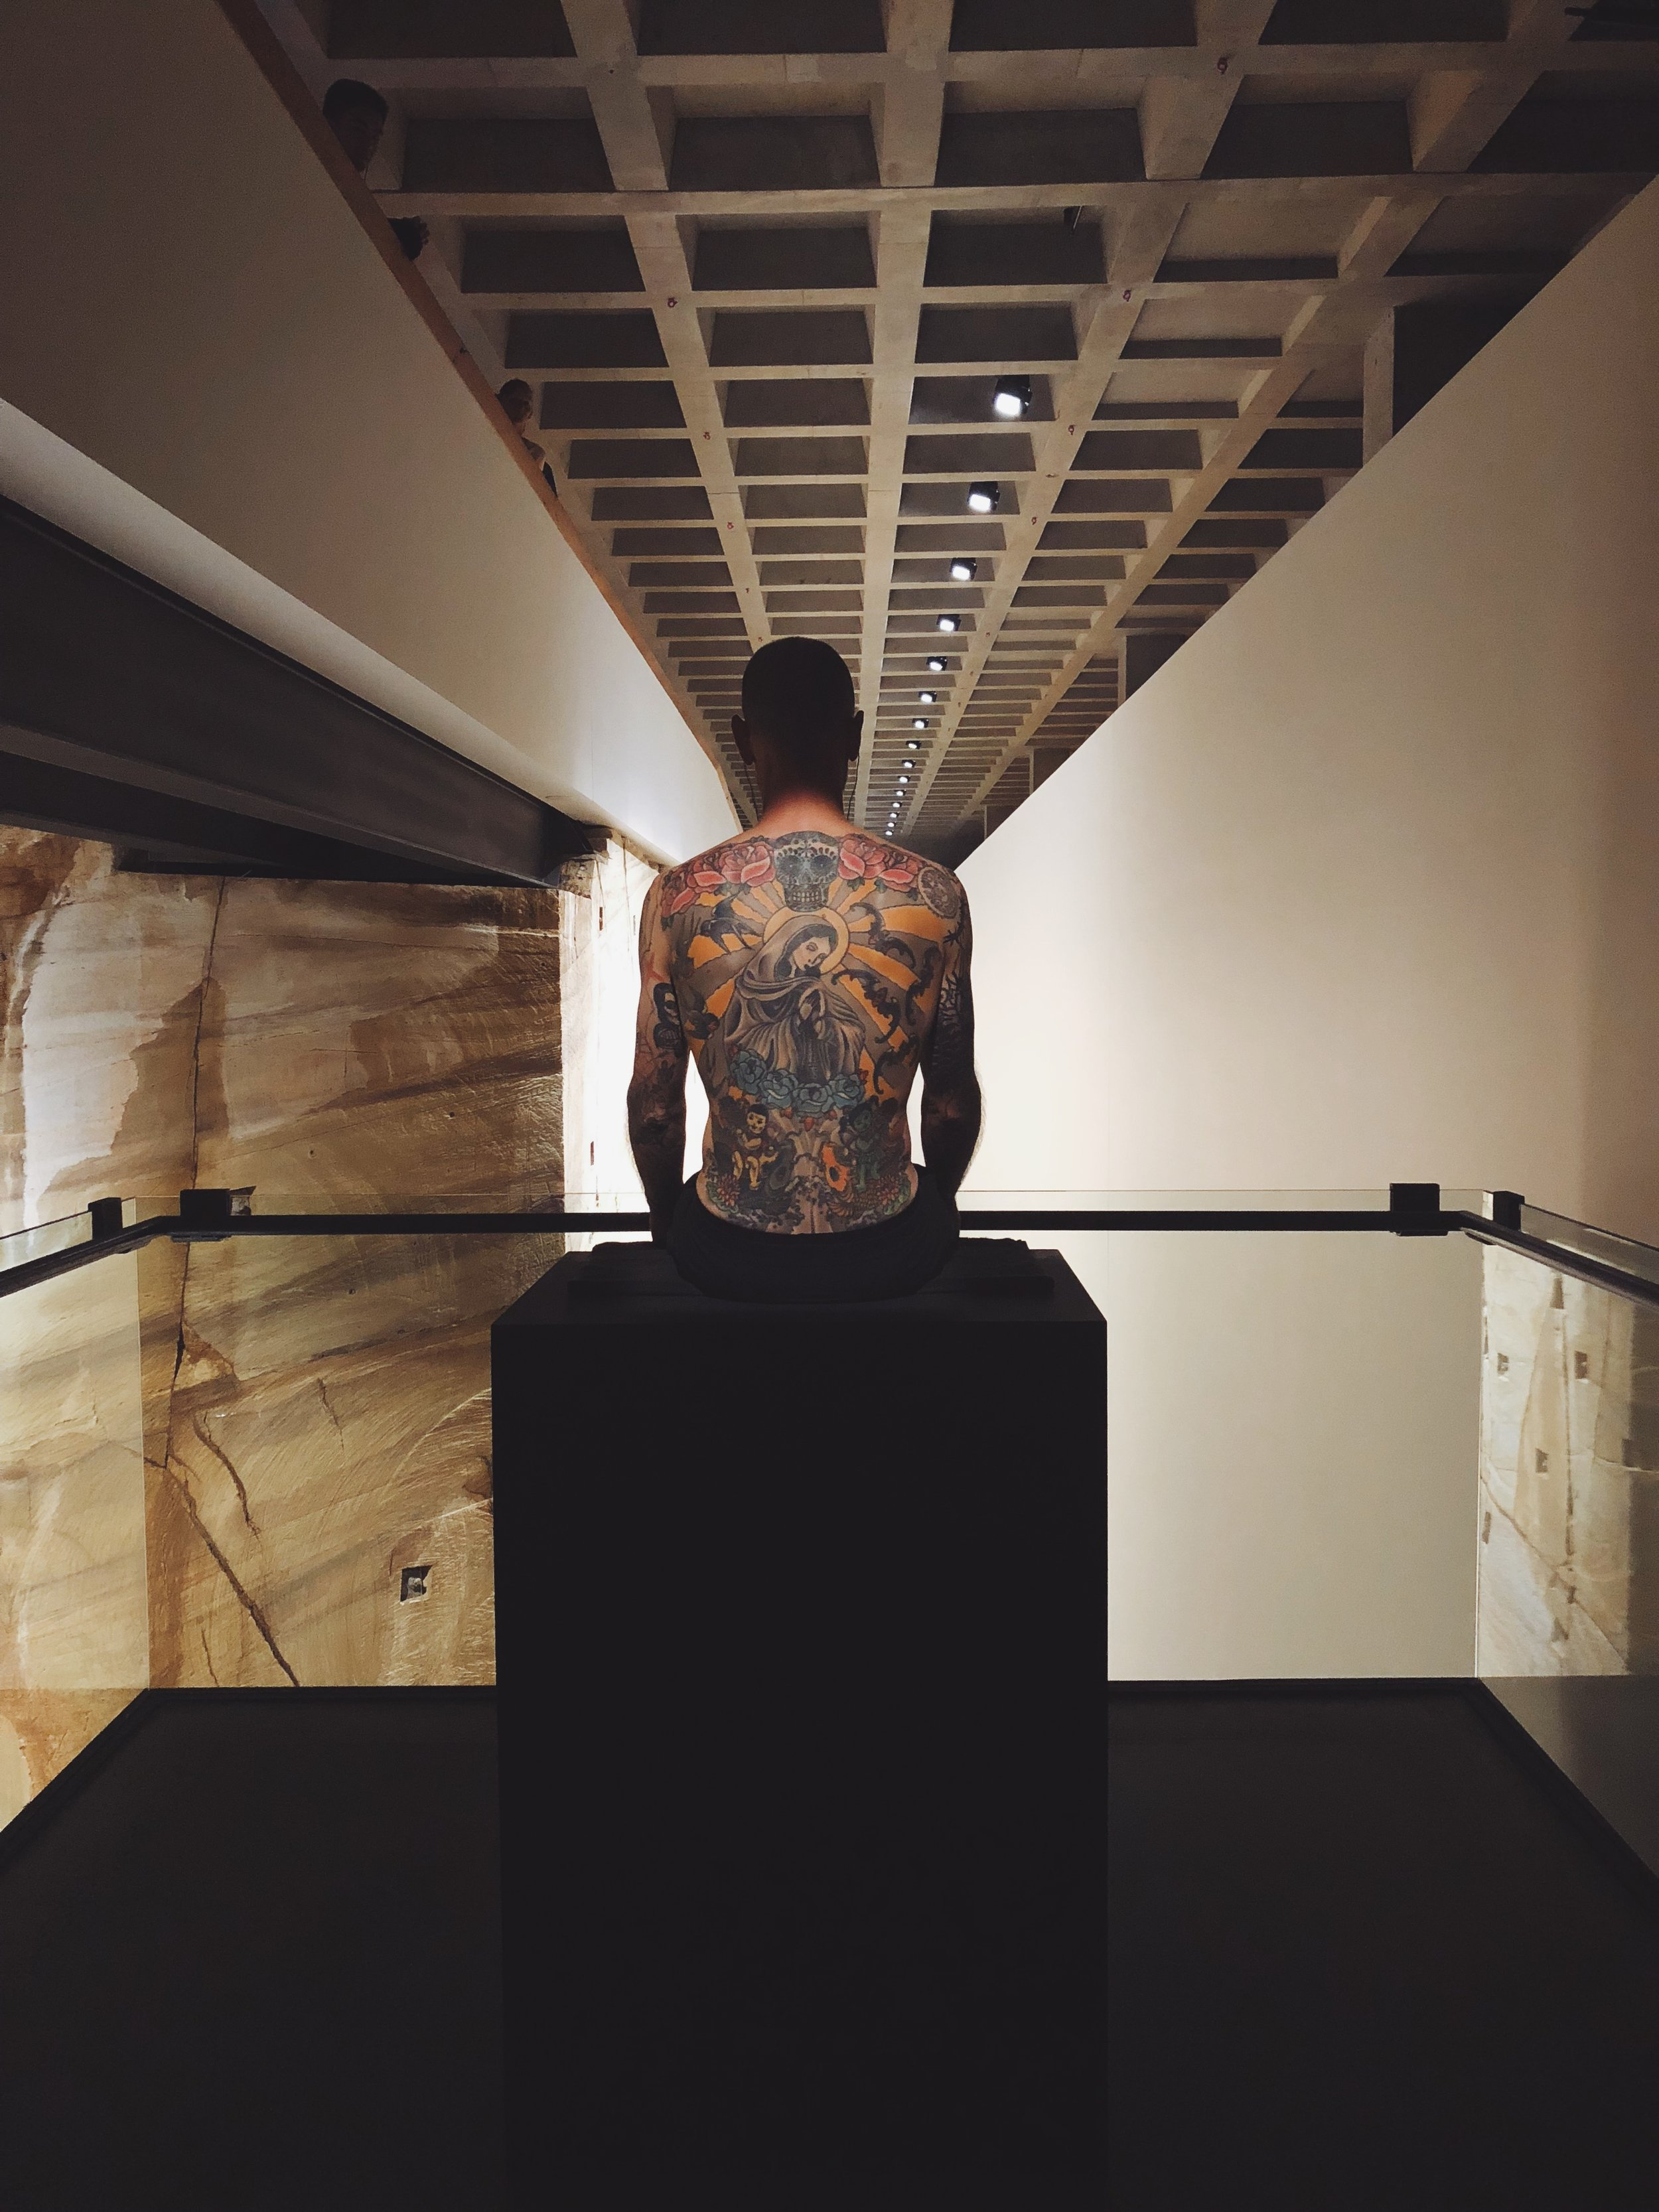 This is Tattoo Tim. His tattoo, and therefore his skin, have been  purchased by an art collector . *Side note that I do not feel good about the pigs being tattooed in that article.